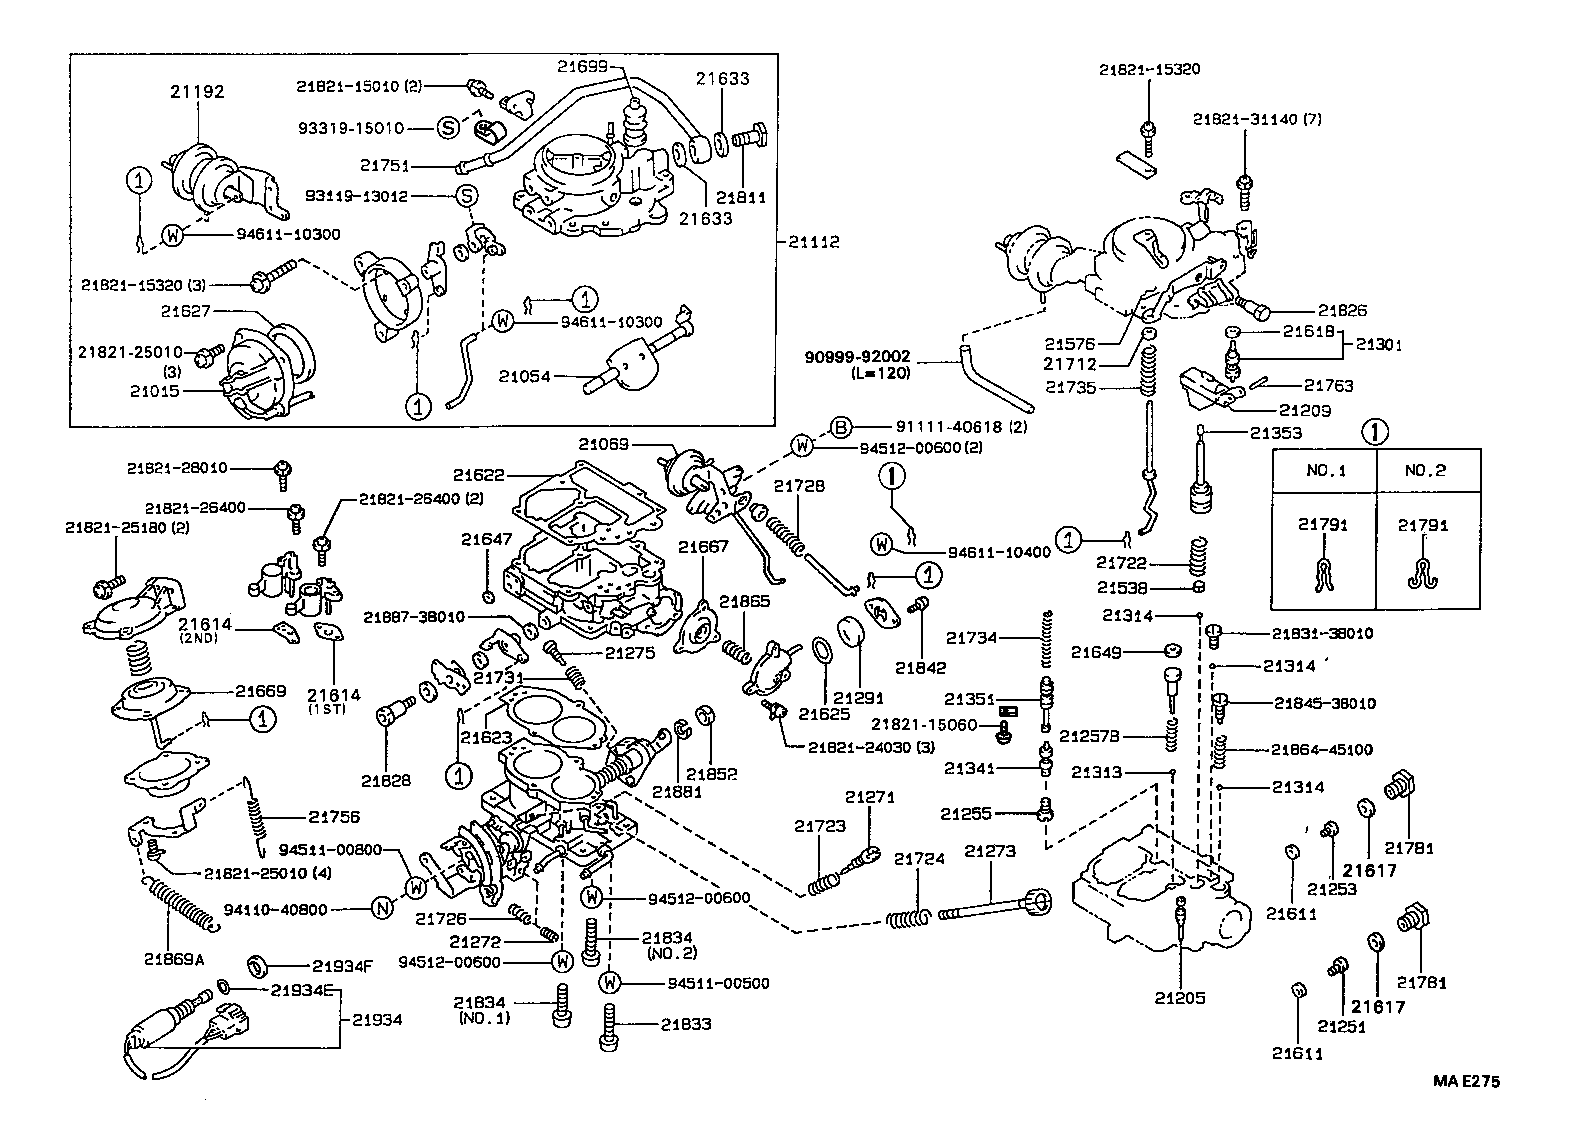 2003 toyota corolla wiring diagram 92 wrangler radio engine for hyundai sonata 2001 2 4 free